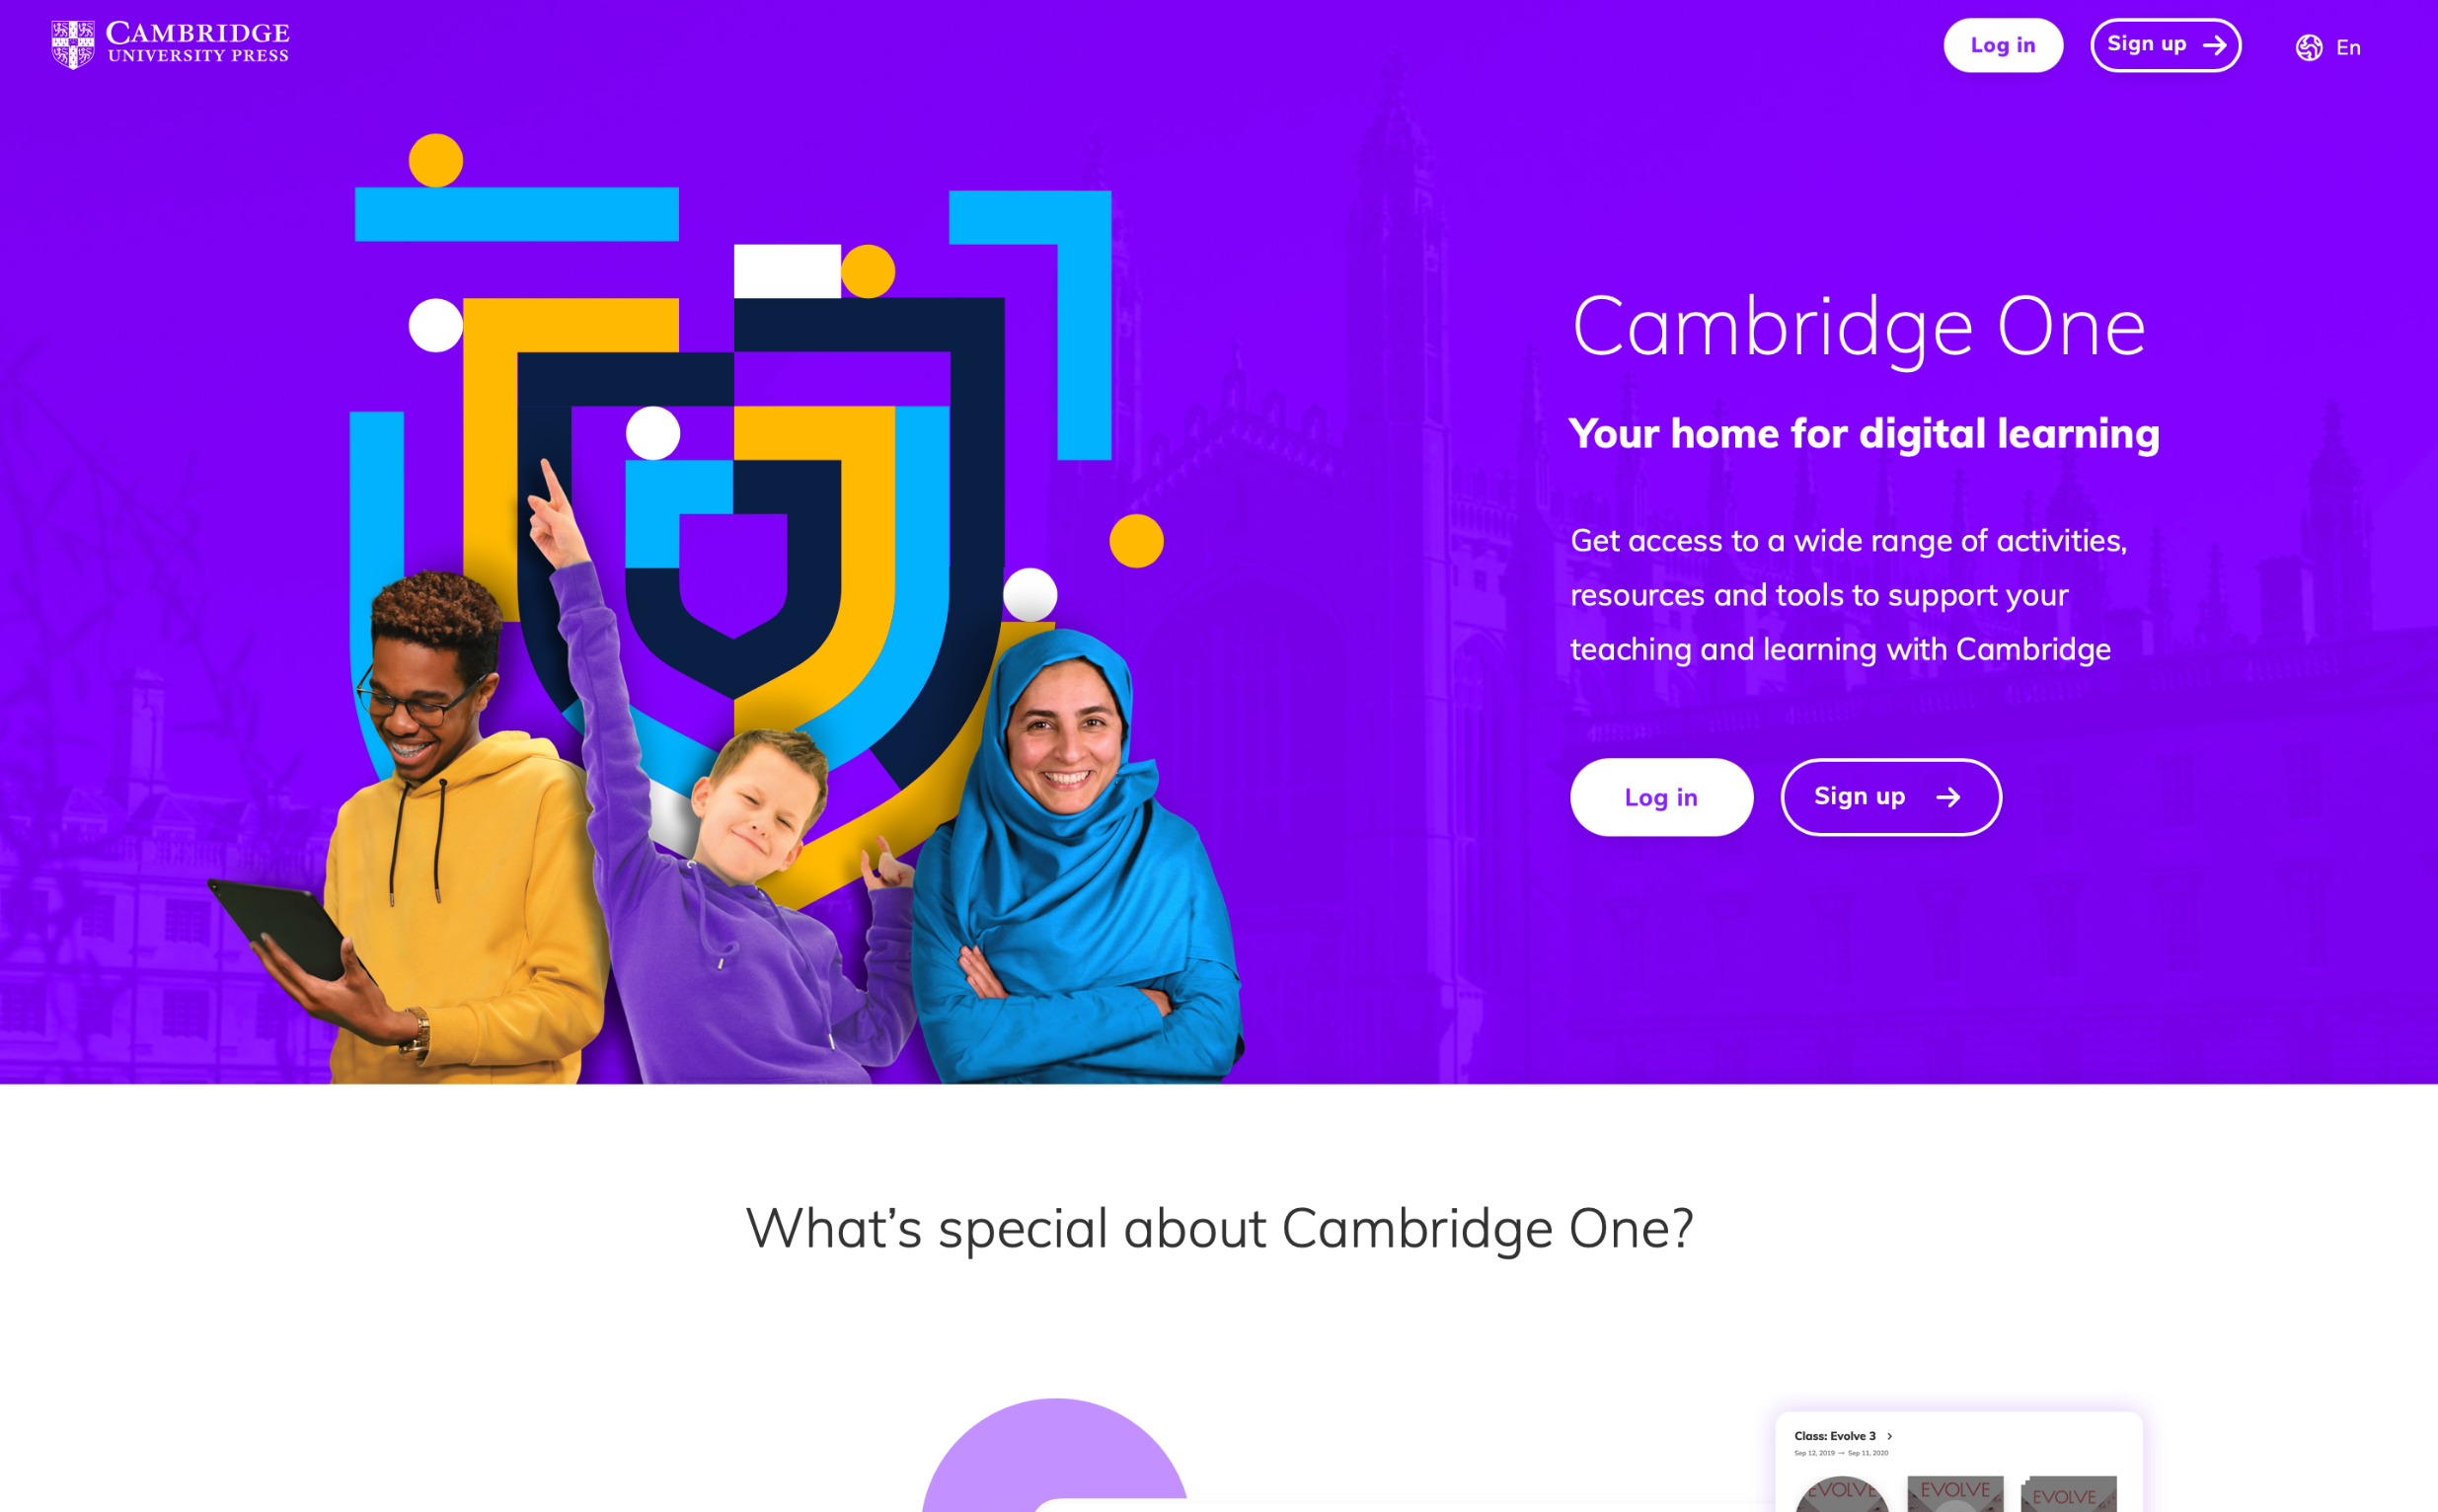 Cambridge One - Your new home for digital learning